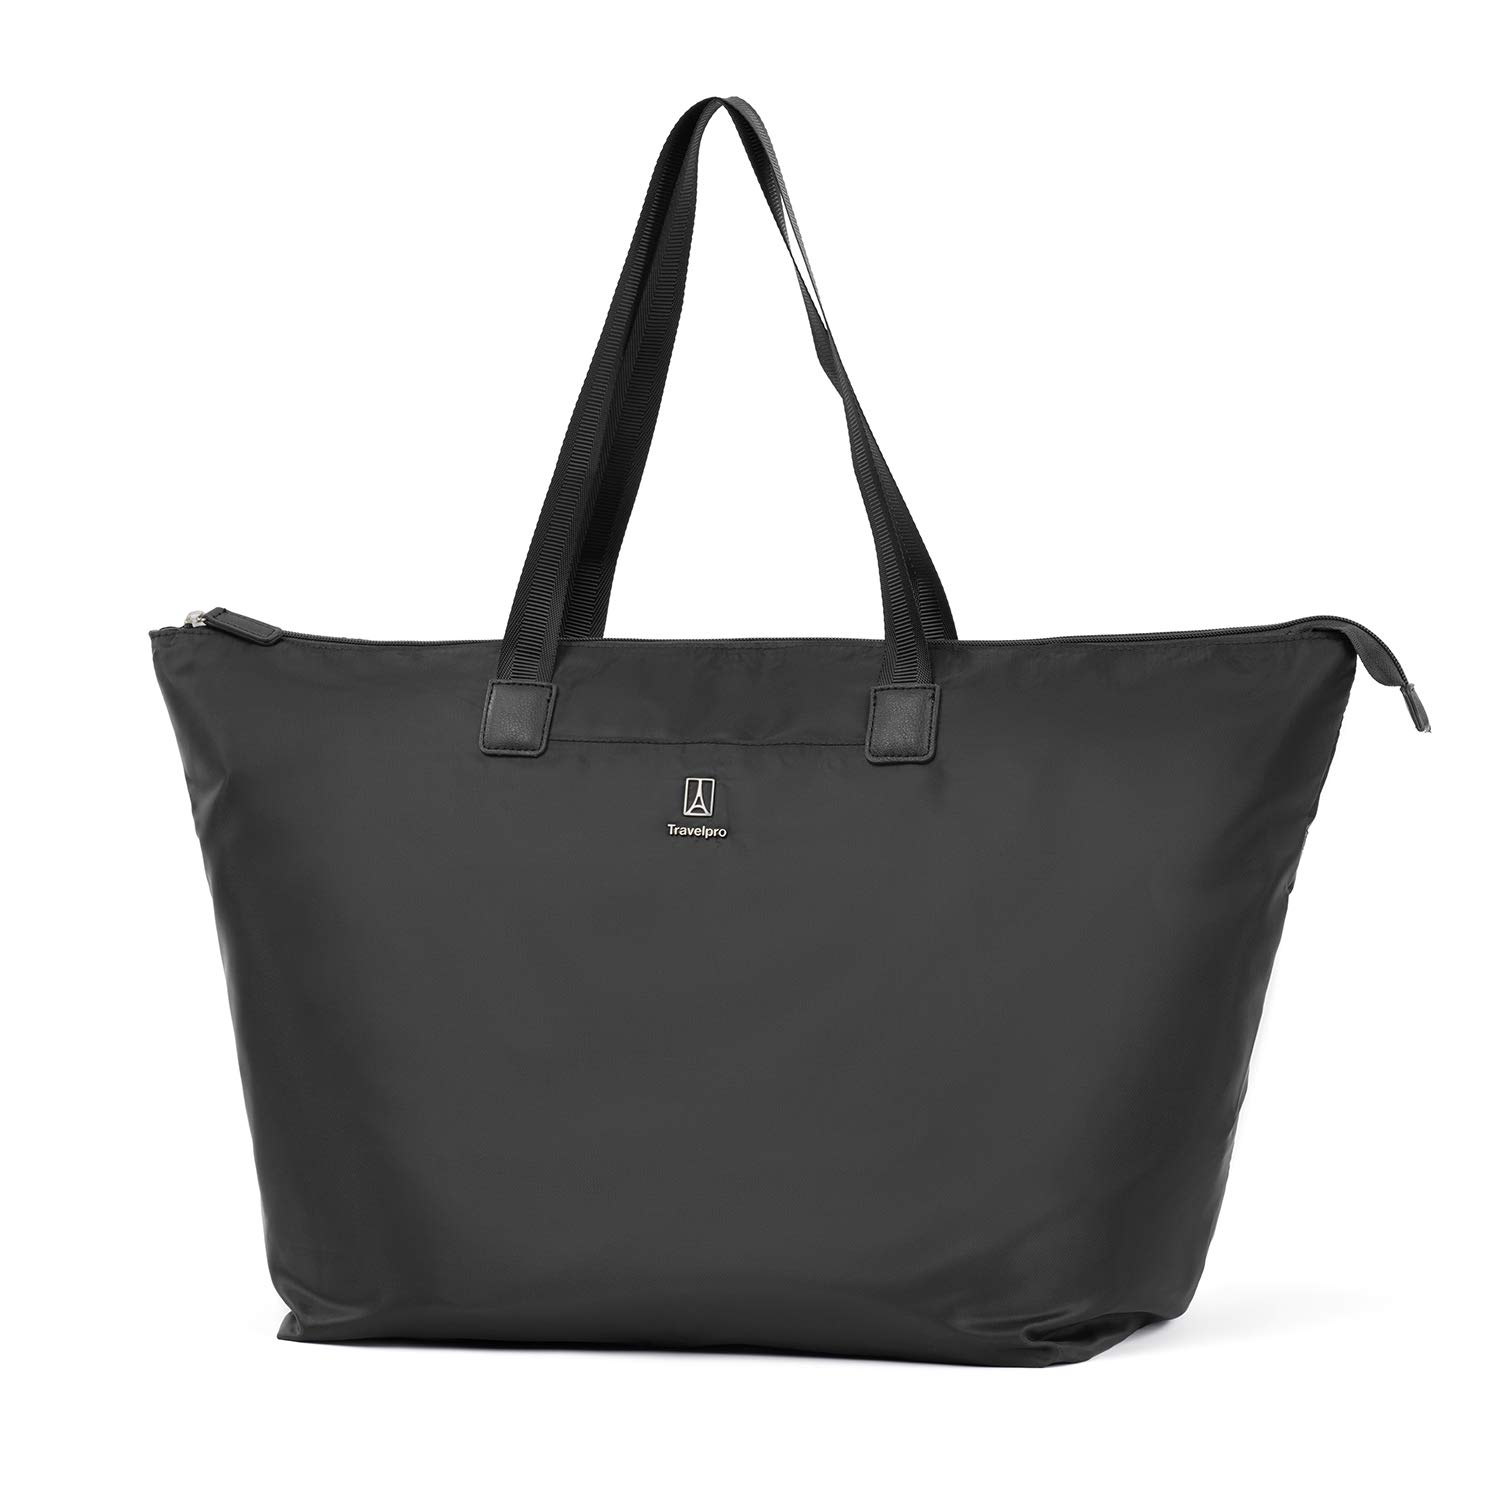 Travelpro Essentials Foldable Tote Travel, Black, One Size